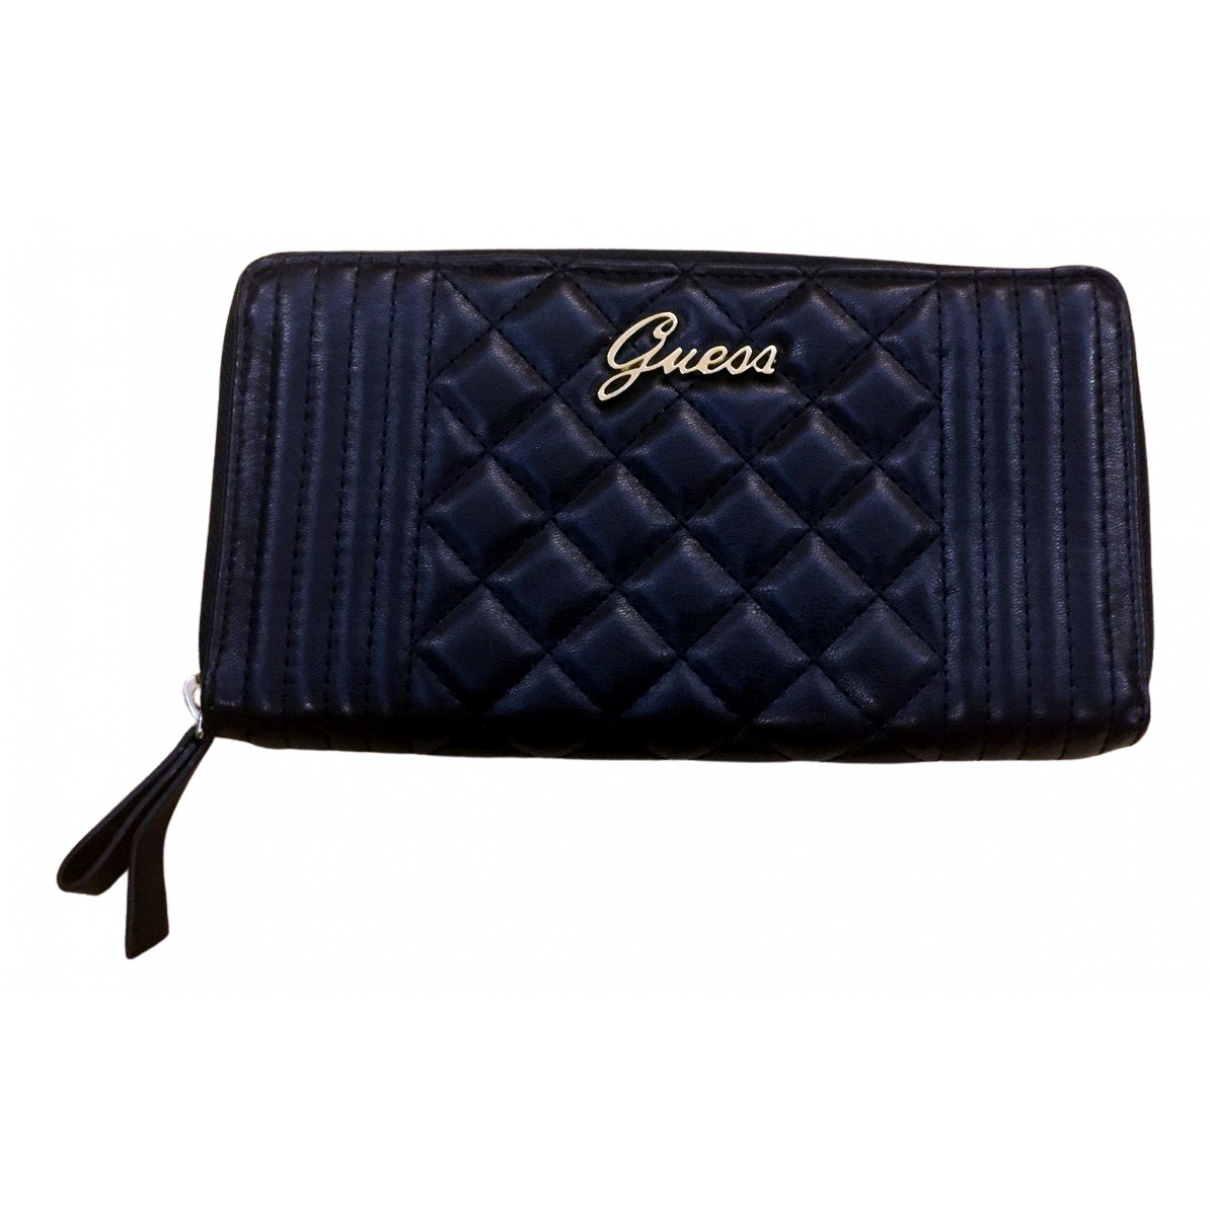 Guess \N Clutch in  Schwarz Leder